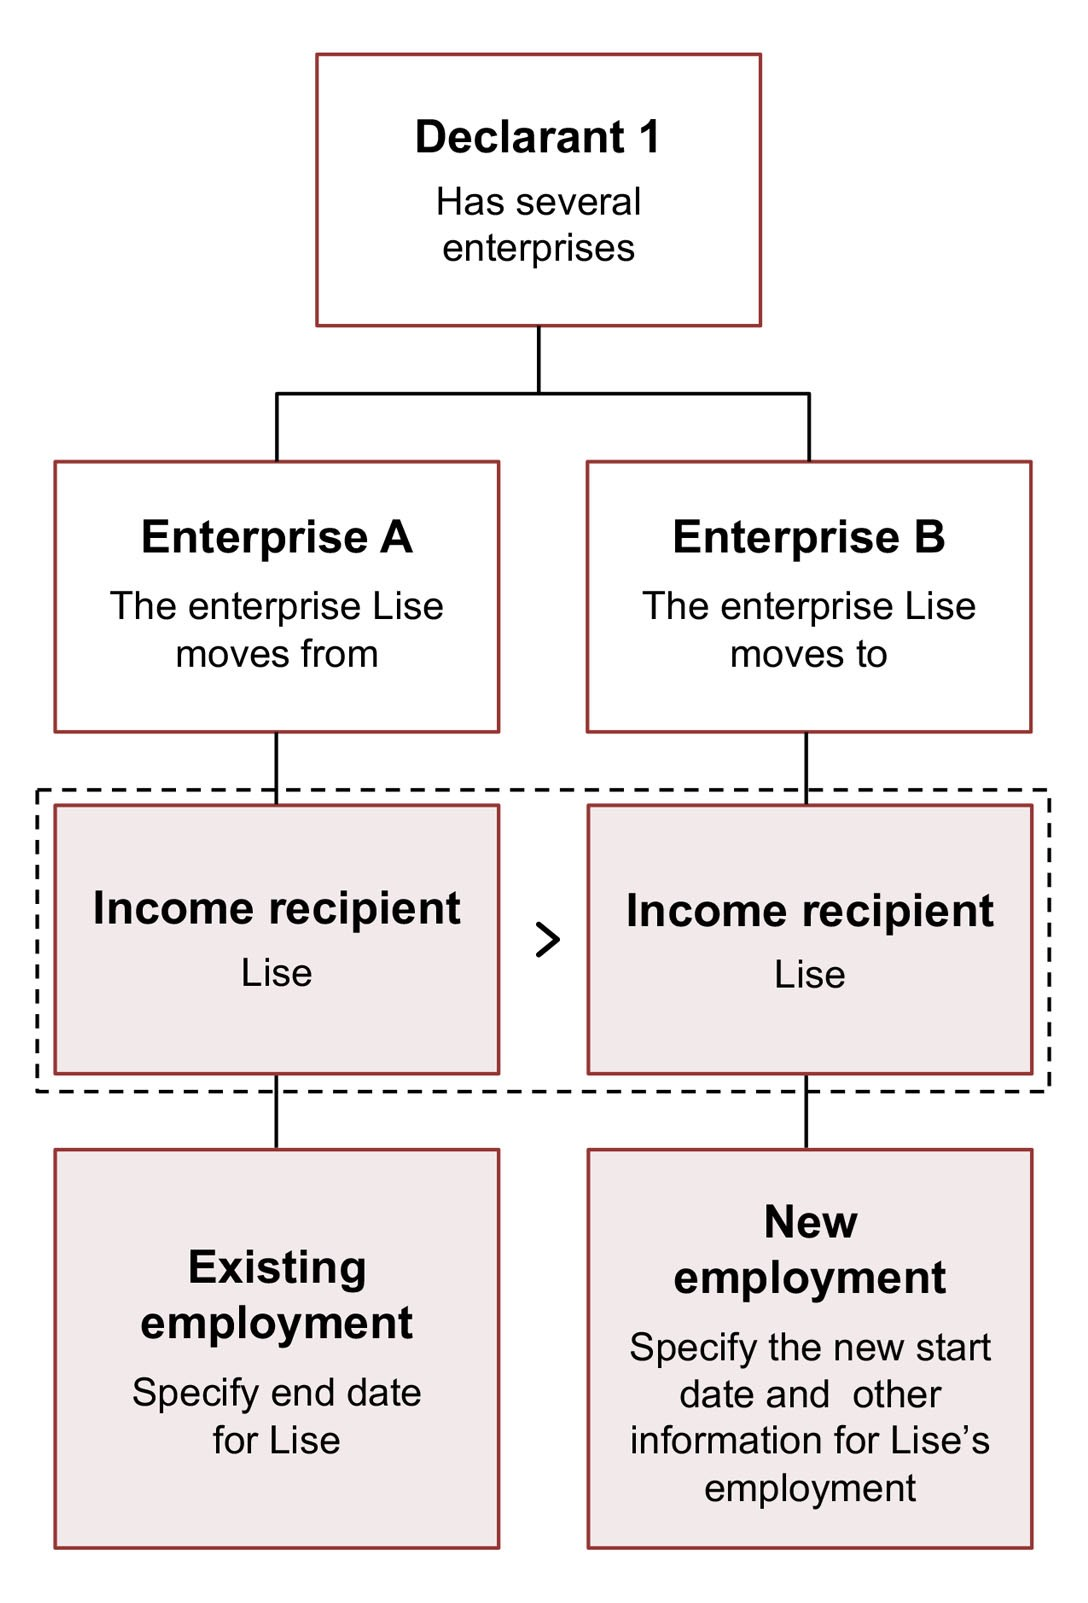 Diagram. Specify the end date in the enterprise that Lise is leaving. Specify the new employment and new start date in the enterprise that Lise is joining. The text in the article explains this in more detail.